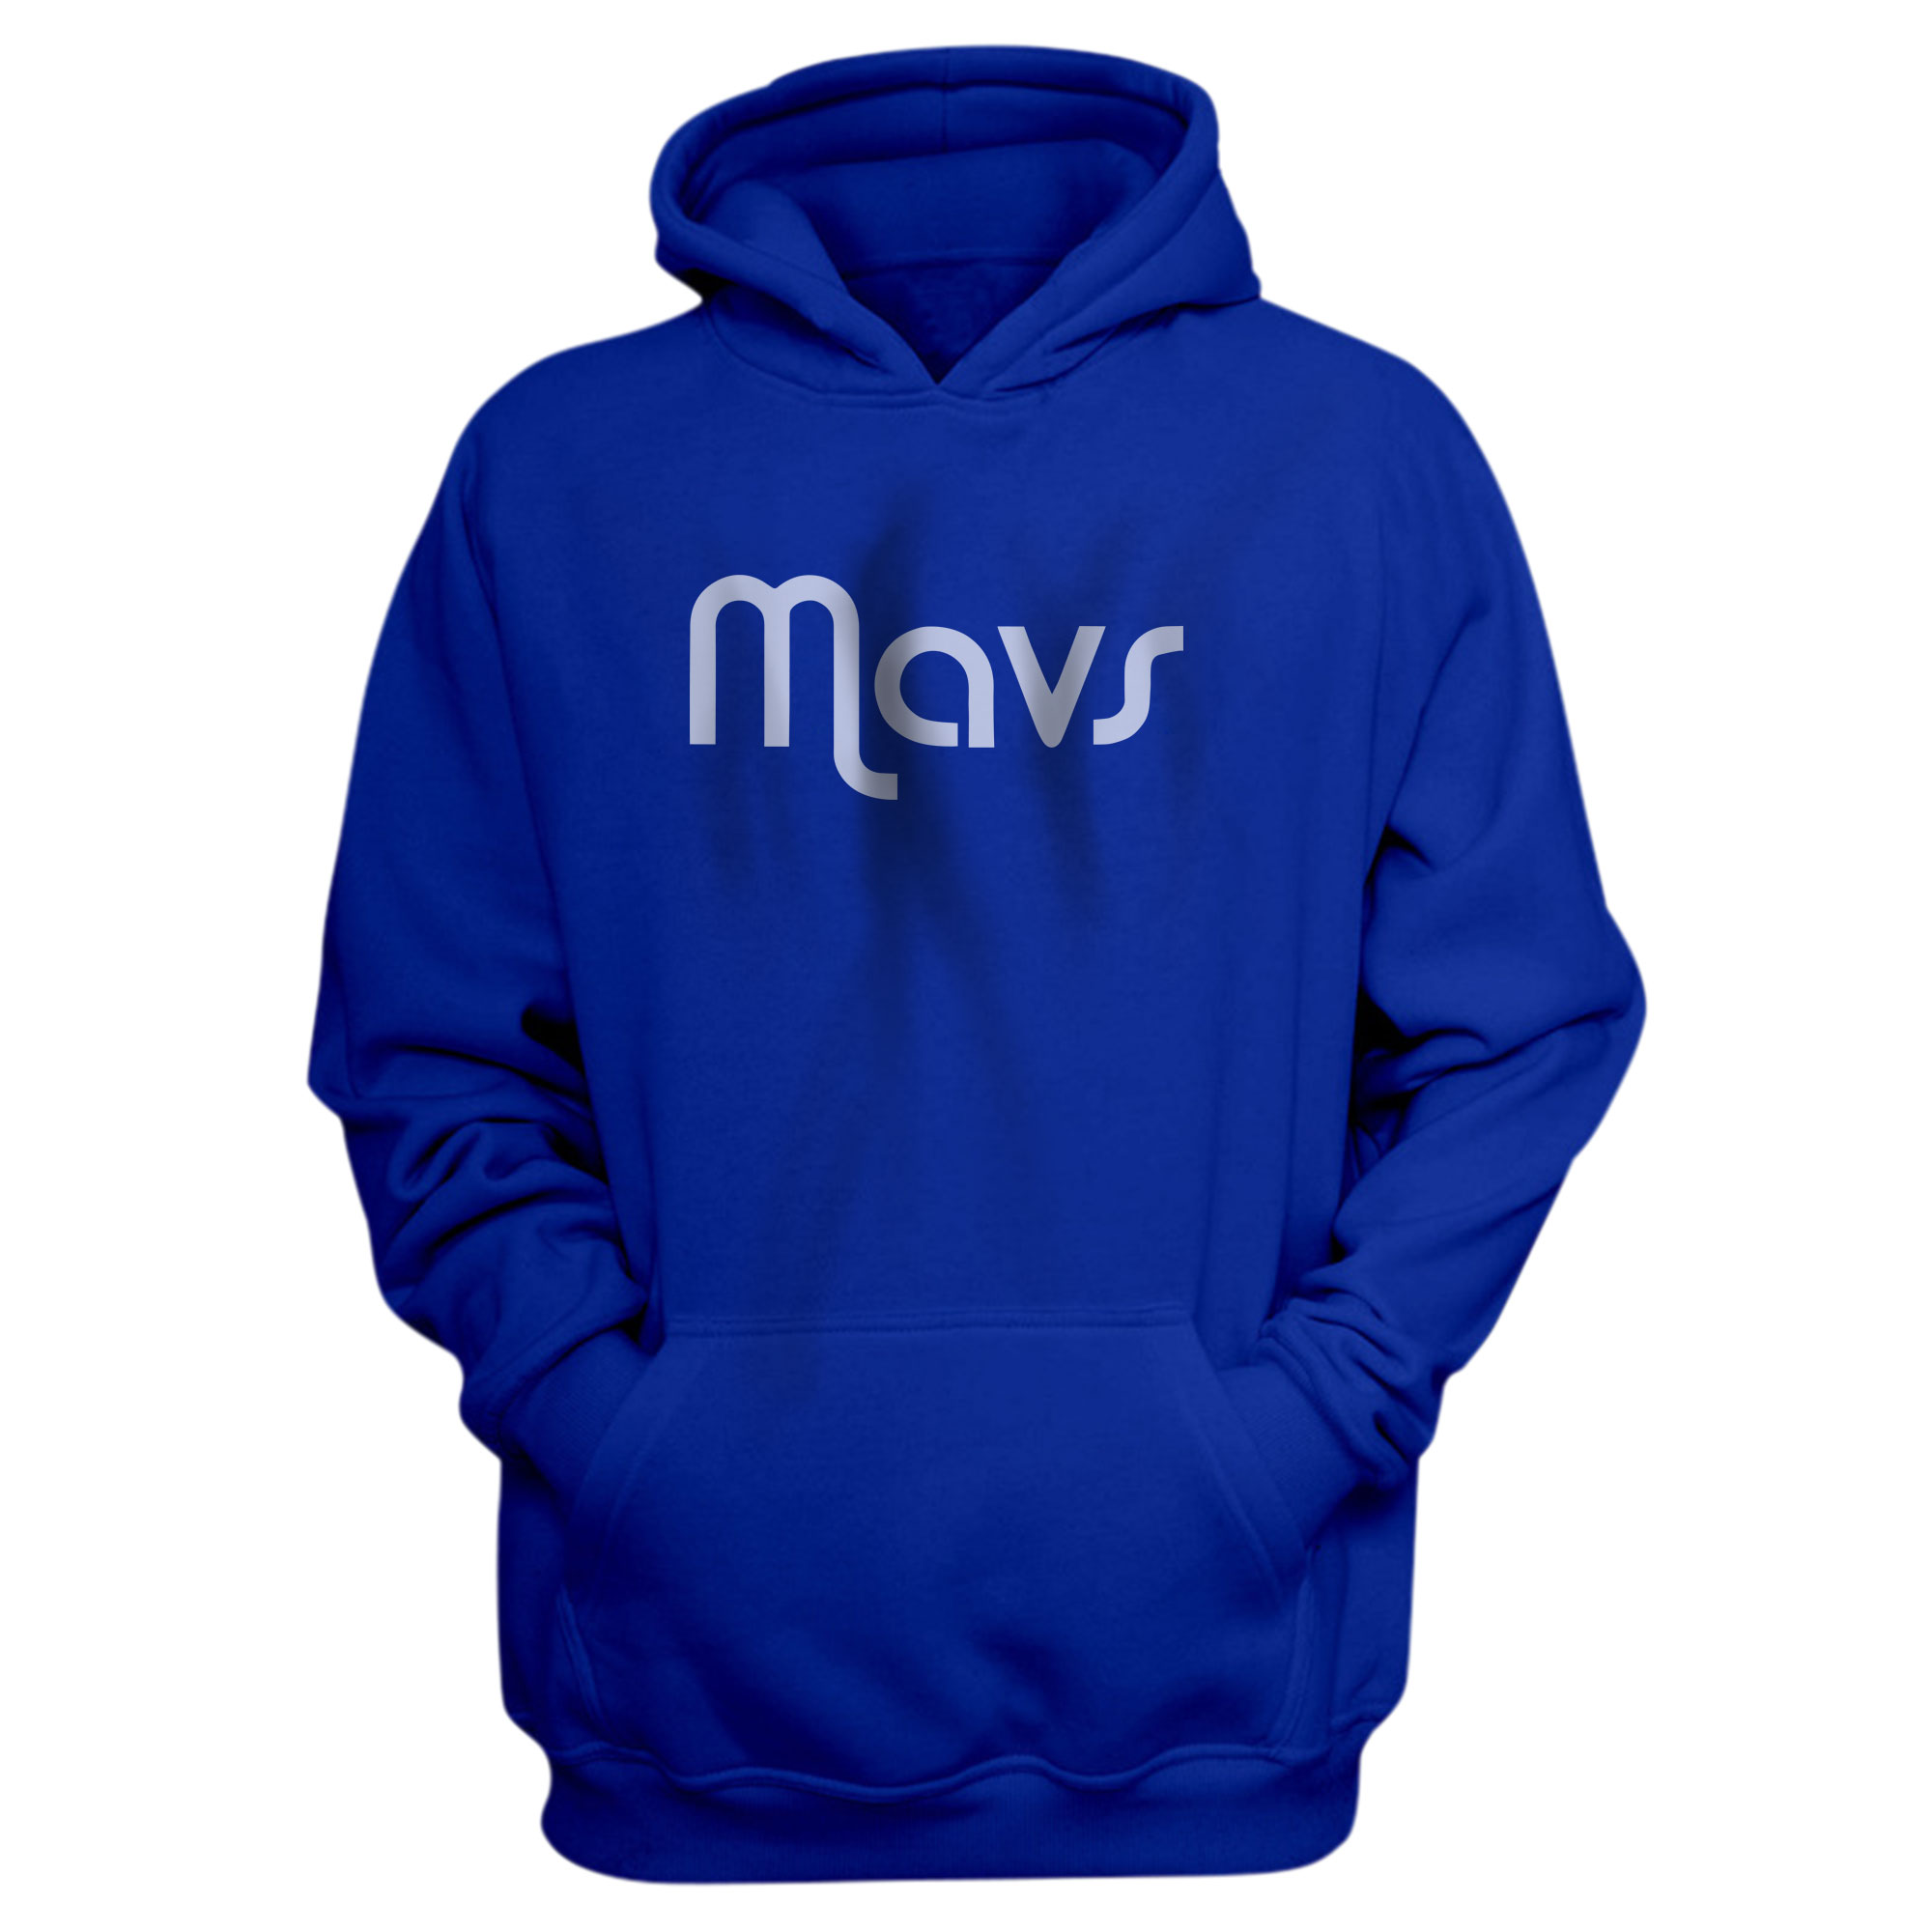 Dallas Mavericks Dallas  Mavericks Hoodie (HD-BLC-plt-dallas-mavs-607)